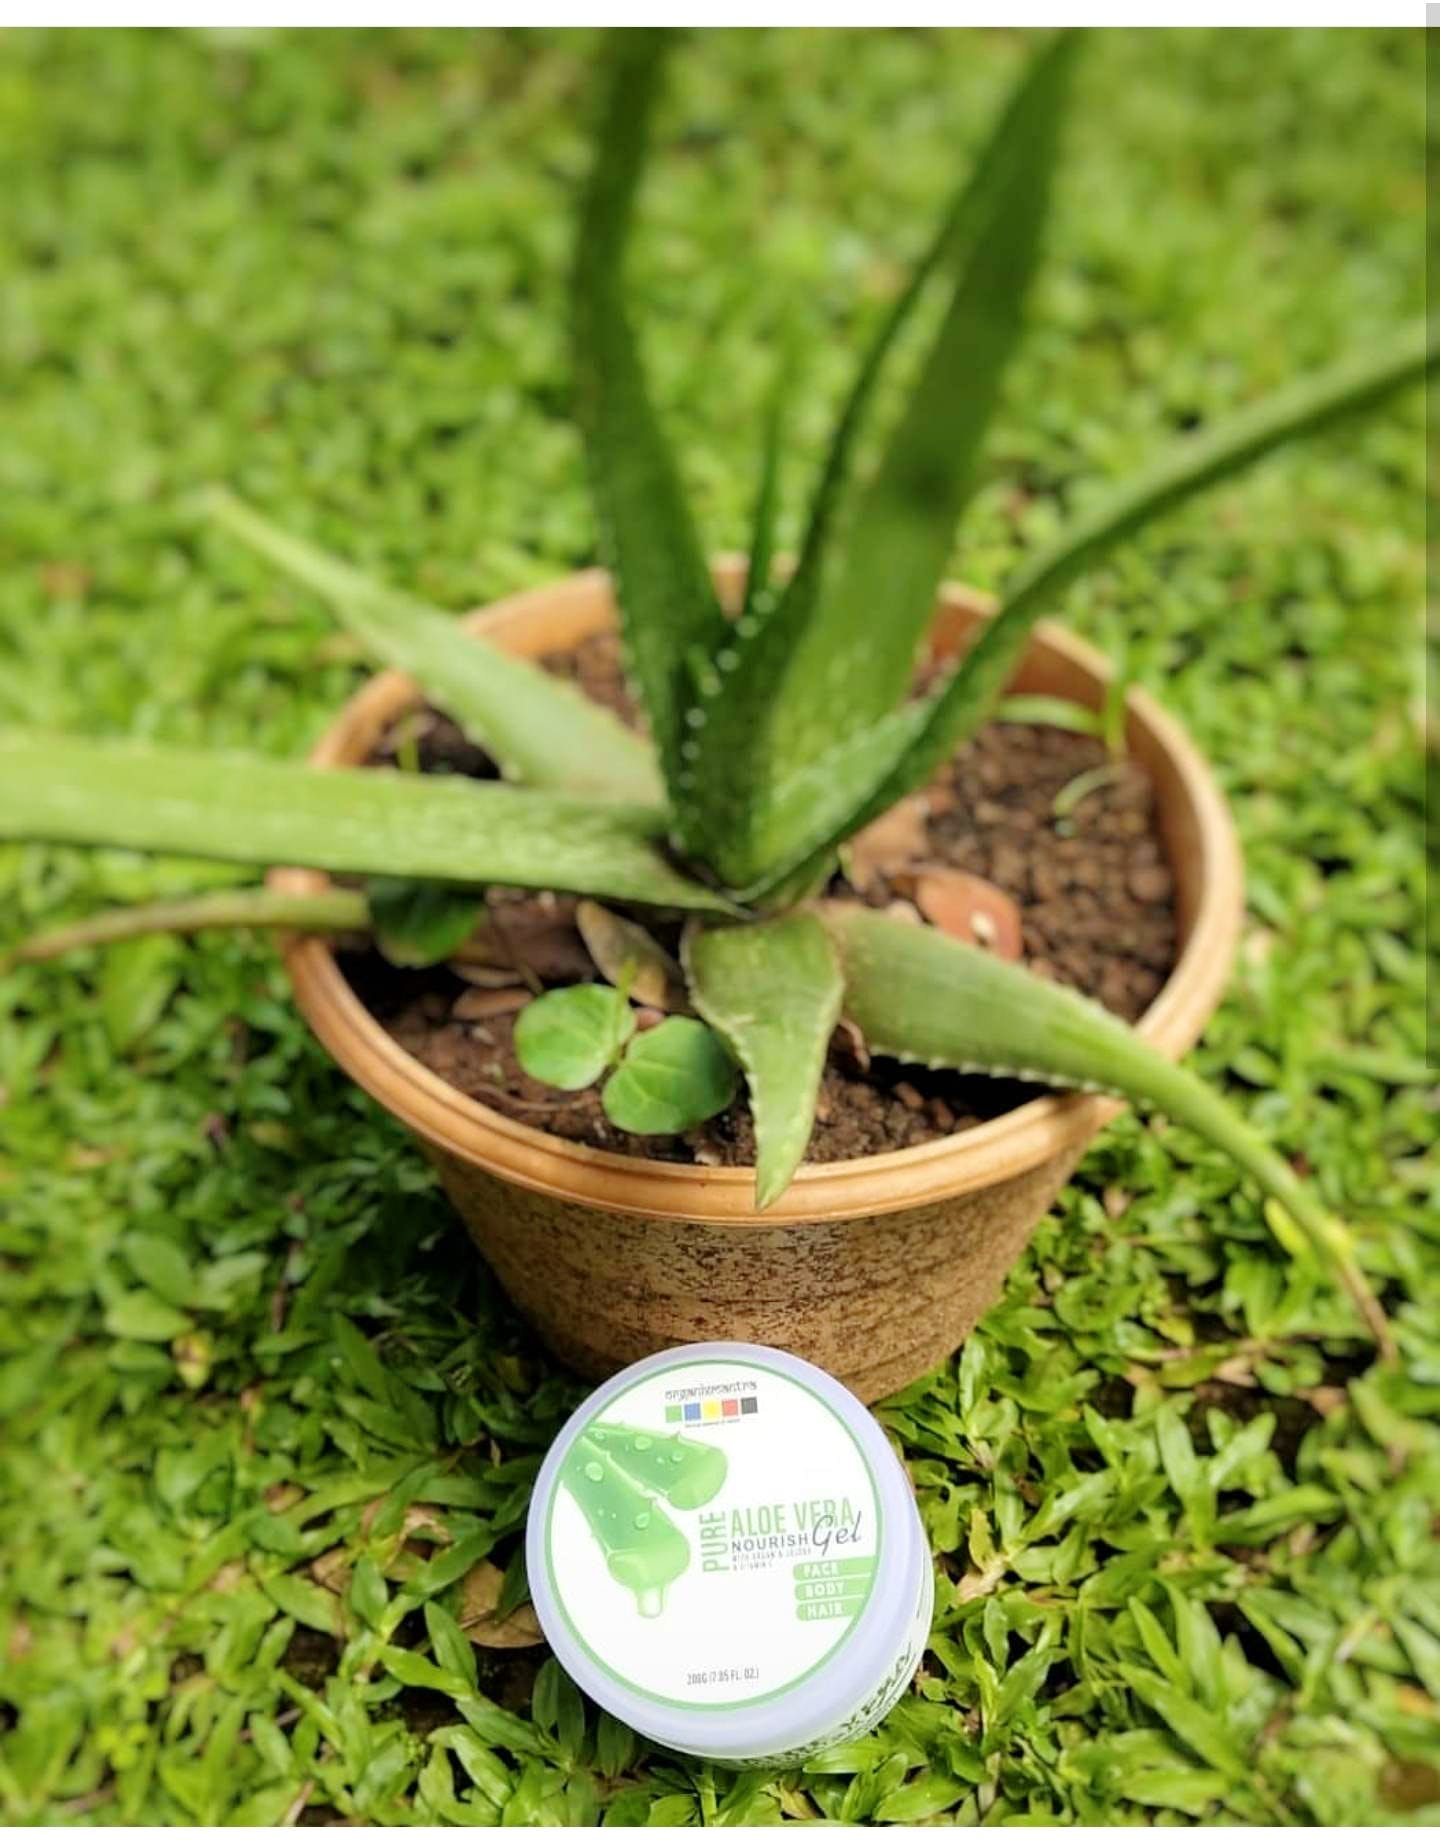 This Summer Get Your Hands On This Natural Aloe Vera Gel With Jojoba & Vitamin C